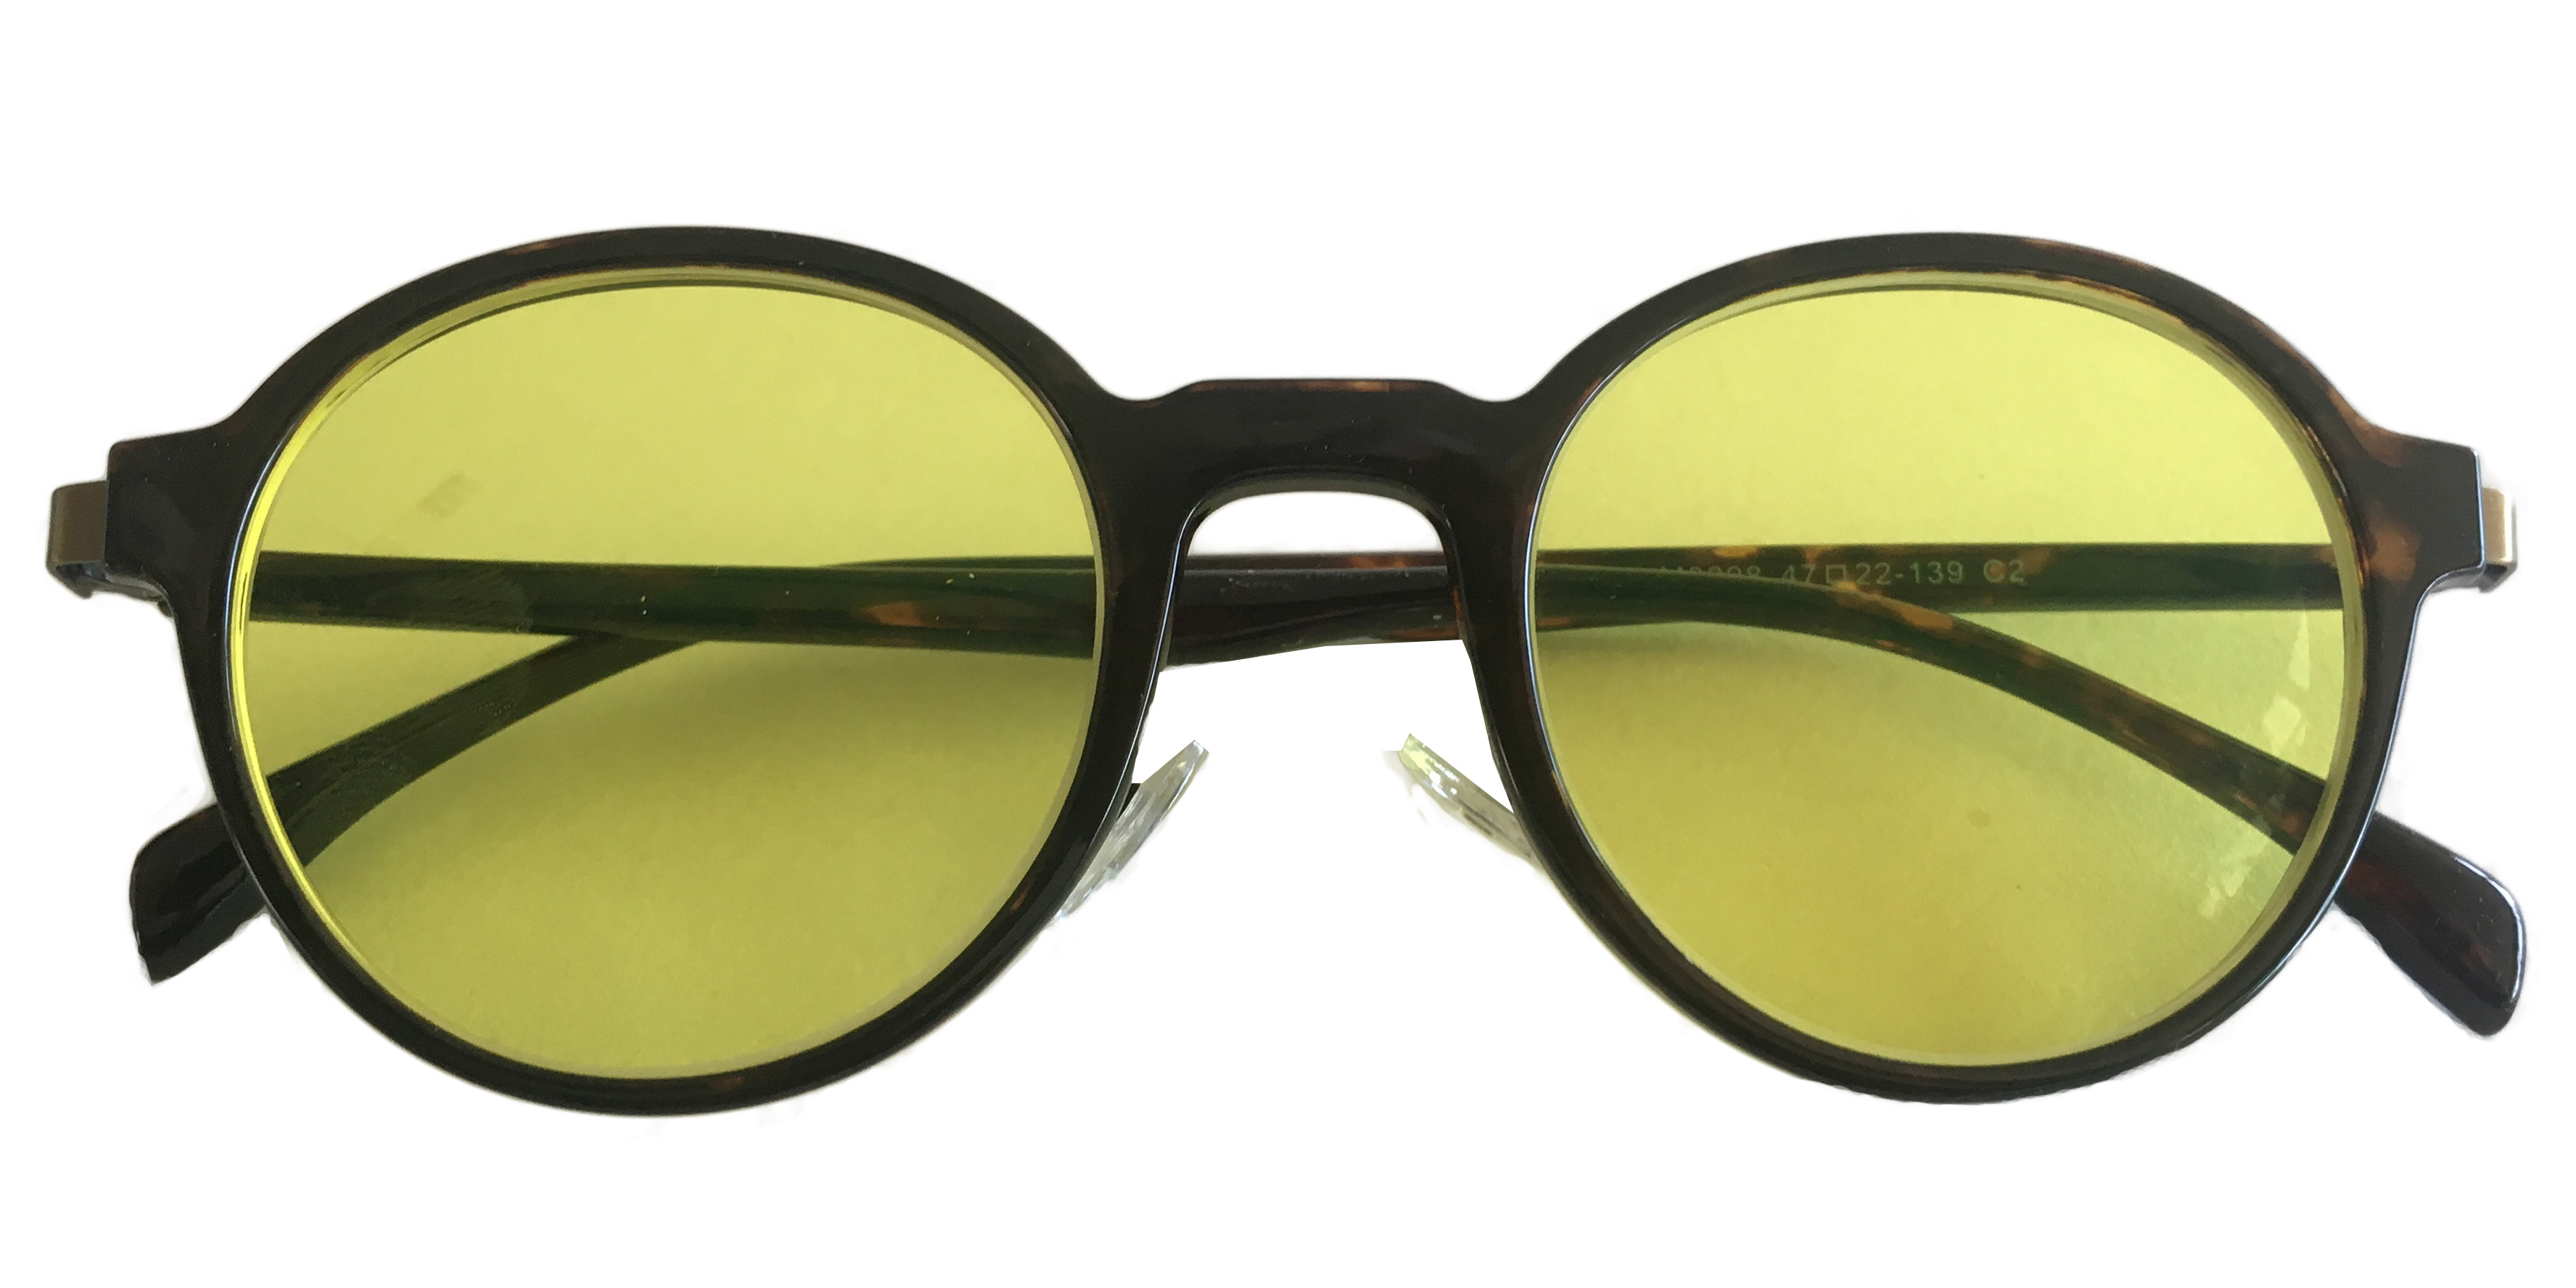 Medium yellow tinted round glasses